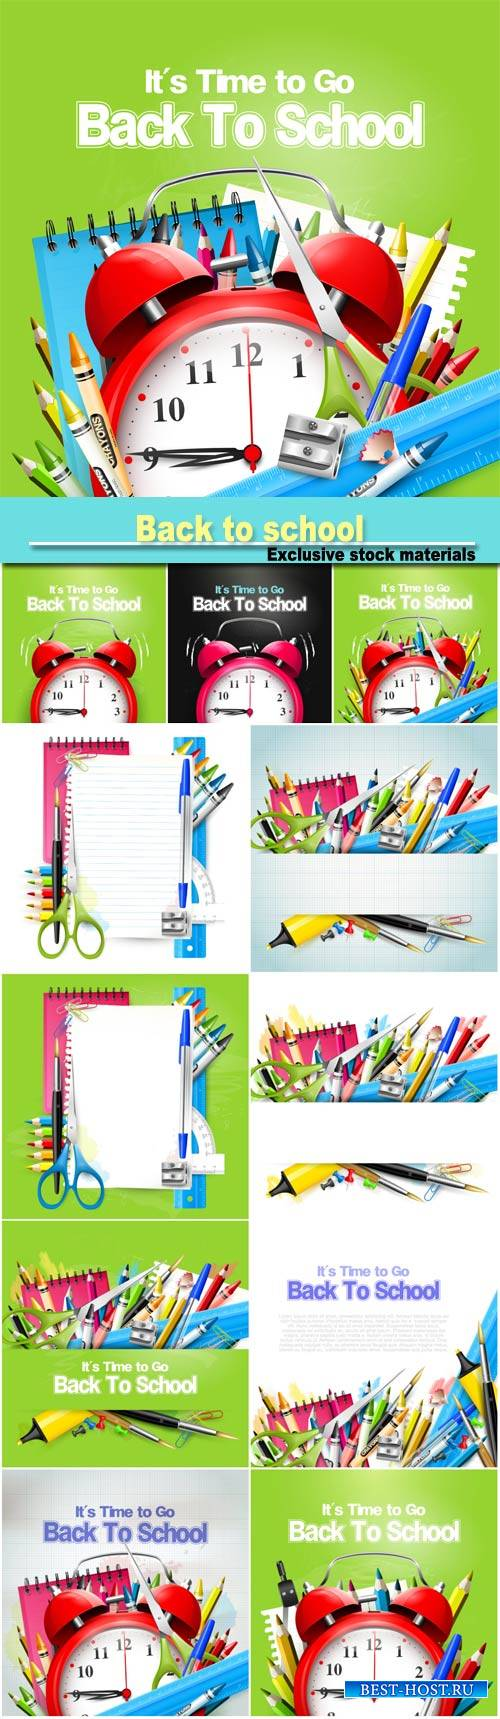 Back to school background, books, notebooks, pens, pencils